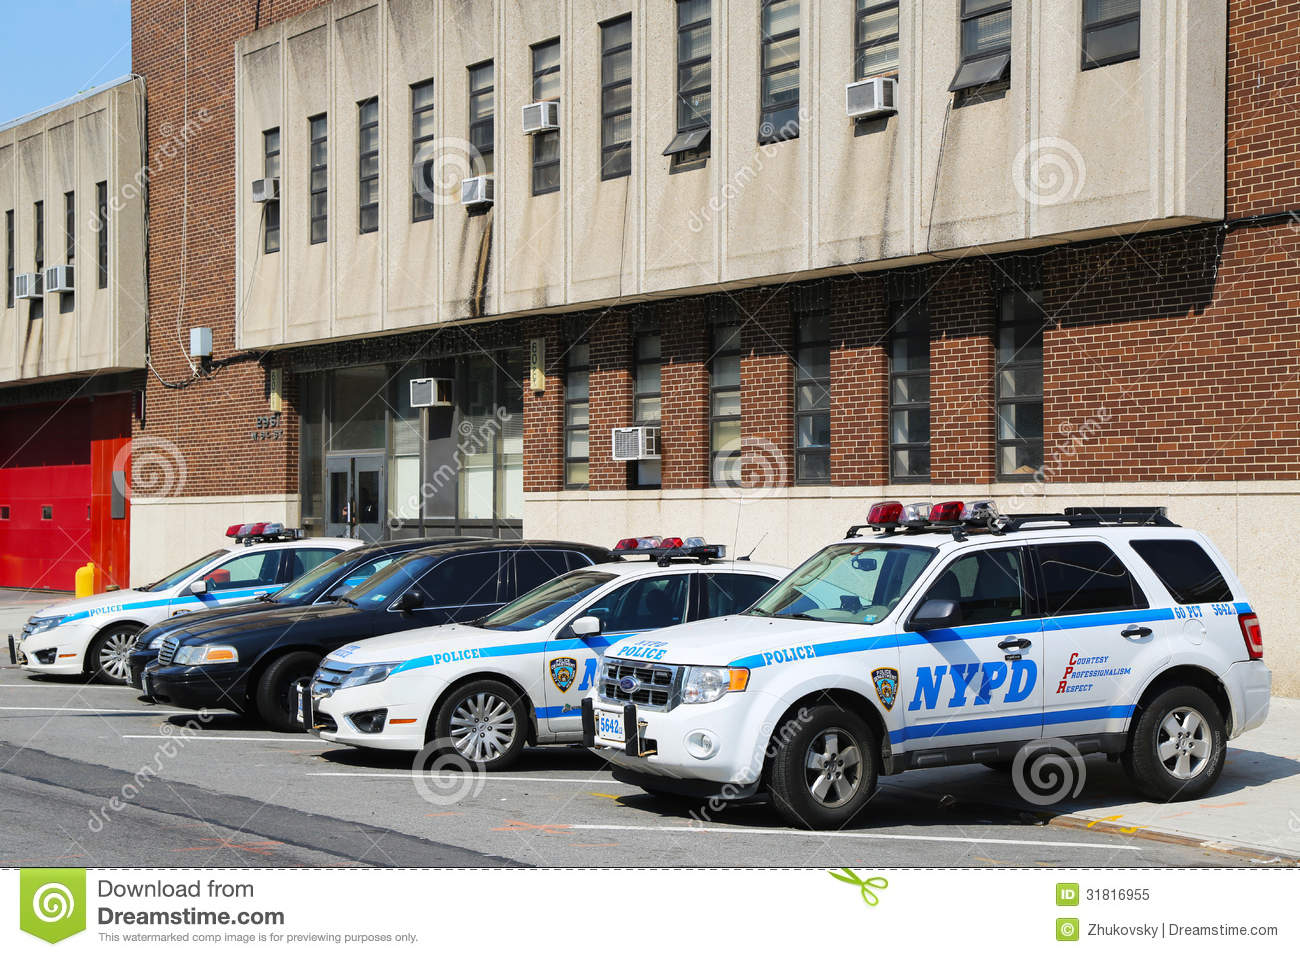 Nypd 60th precinct in brooklyn ny editorial image for Bureau new york